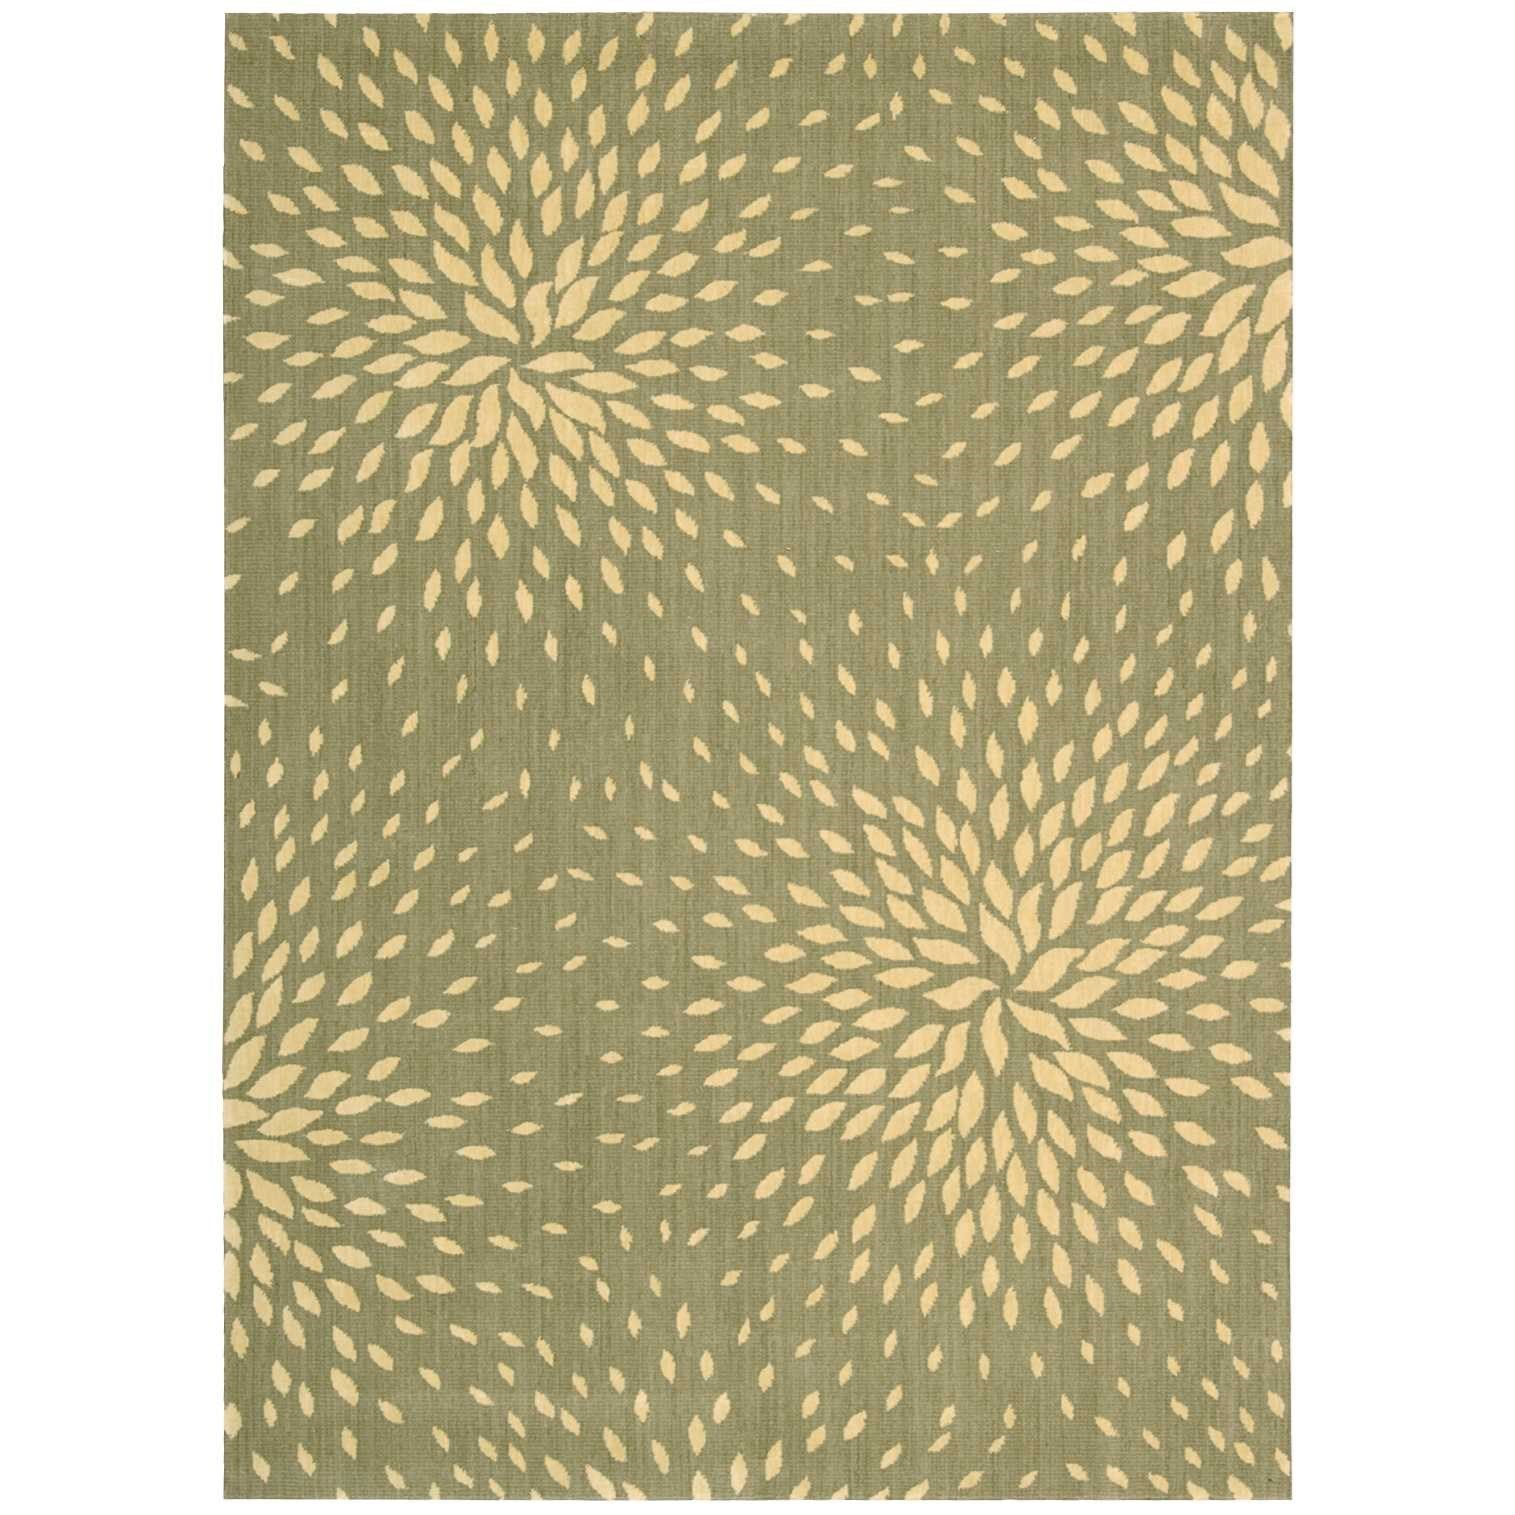 "Capri 3'6"" x 5'6"" Light Green Rectangle Rug by Nourison at Sprintz Furniture"